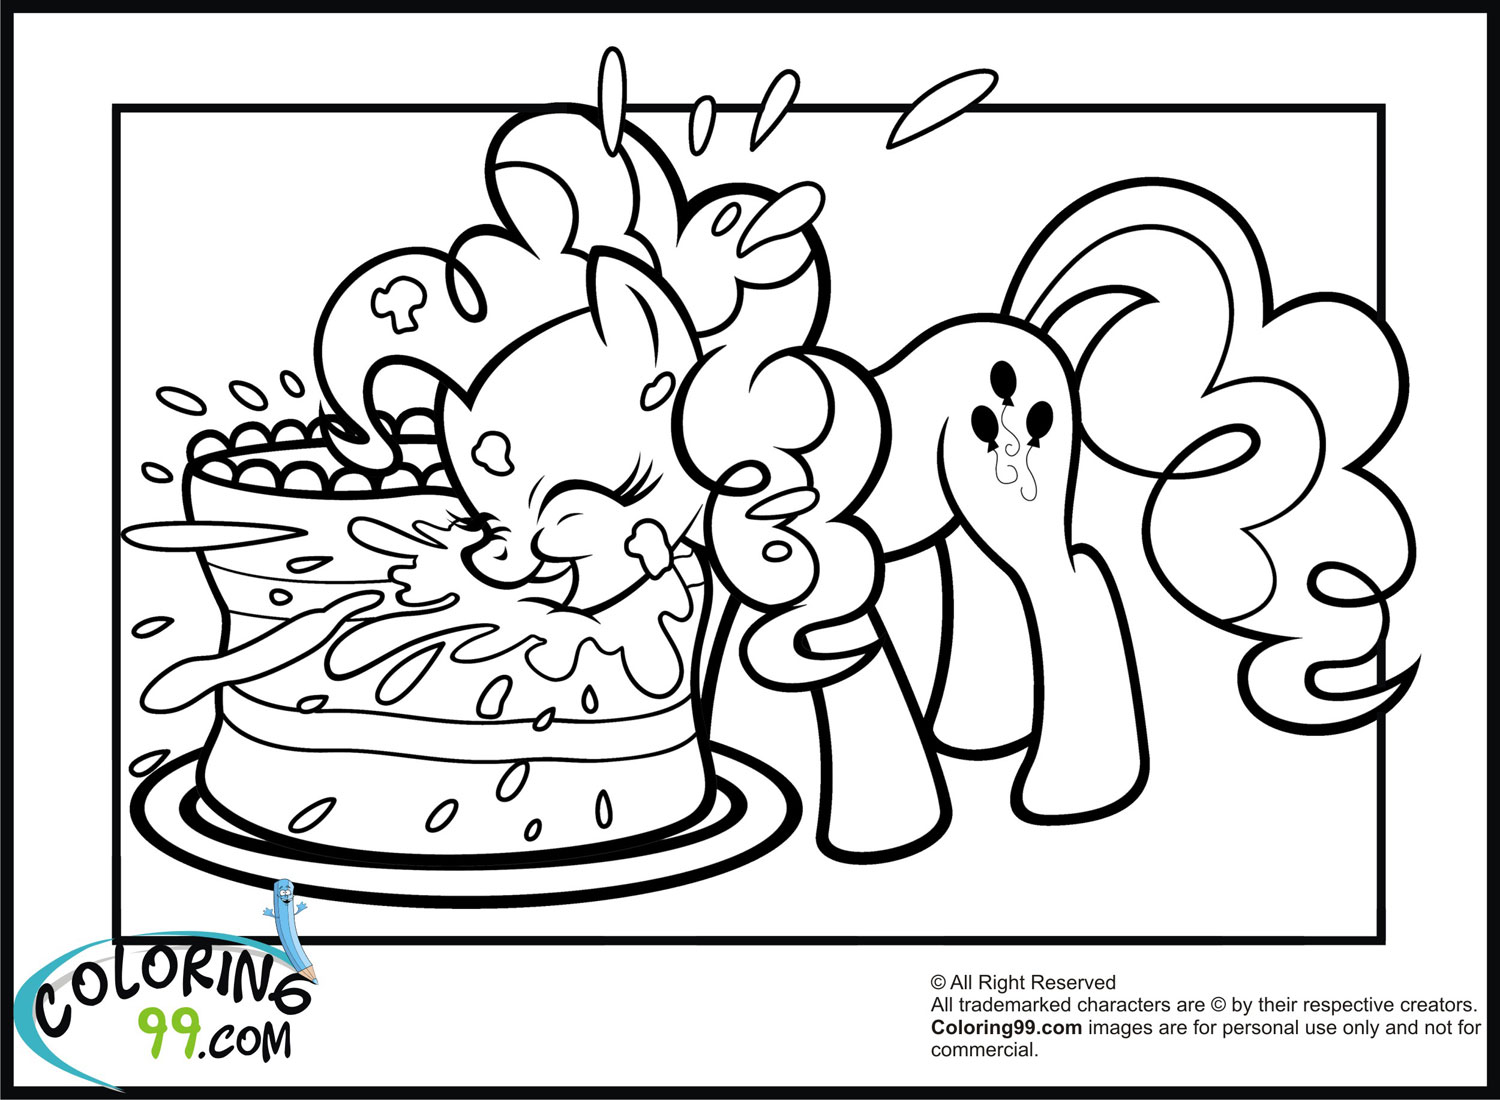 6 Best Images of Pinkie Pie Coloring Pages Printable - My ...